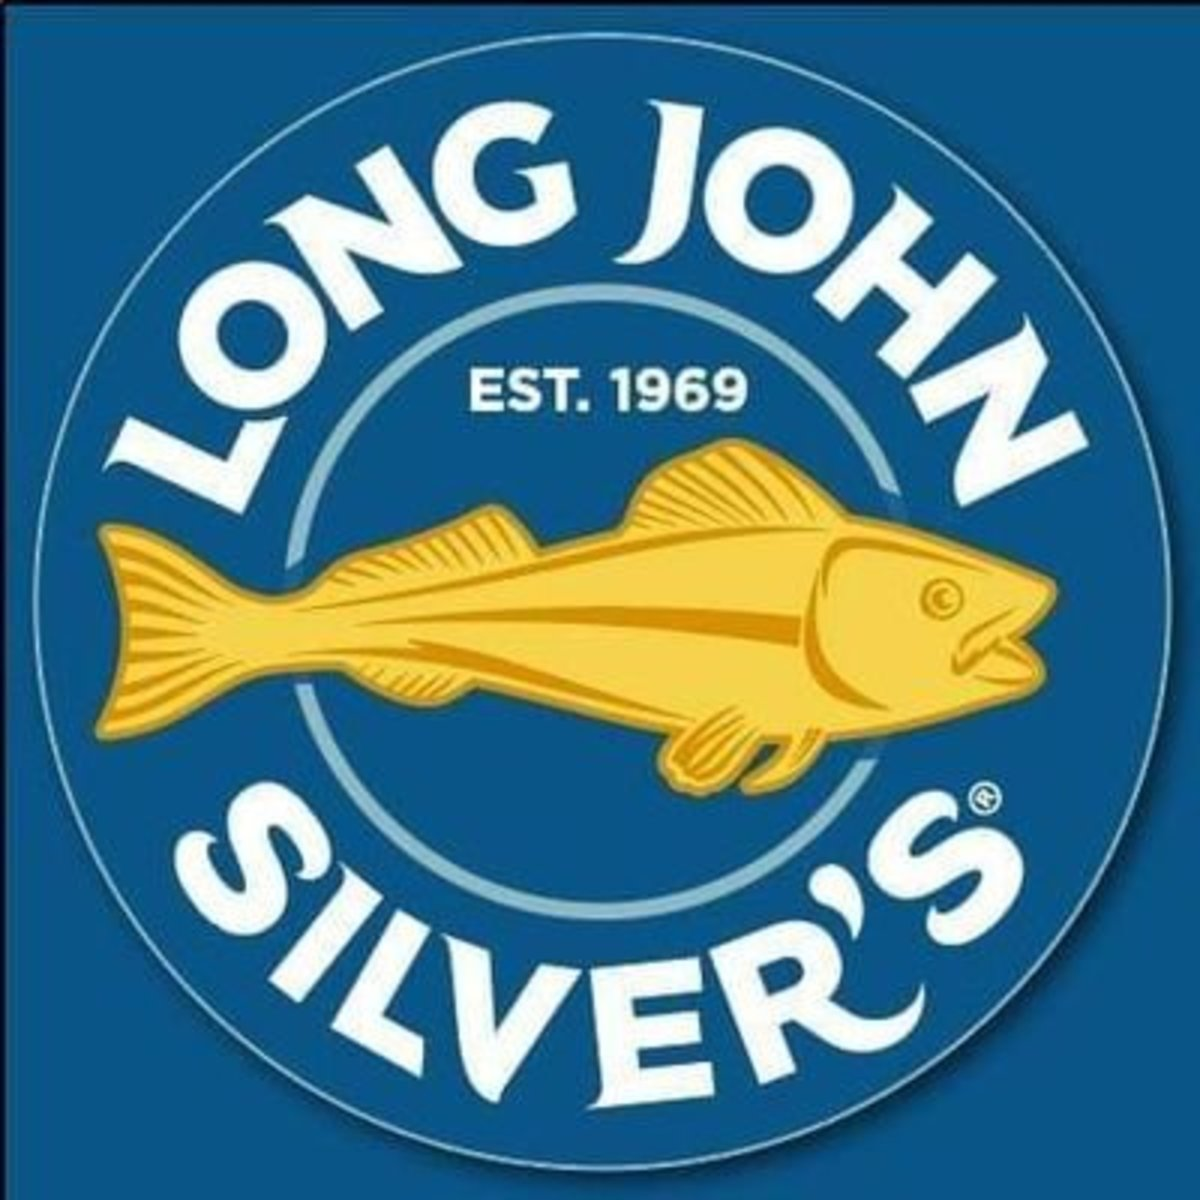 In 1969, Long John Silver's—a chain of fast food restaurants specializing in seafood—was founded in Lexington, Kentucky.